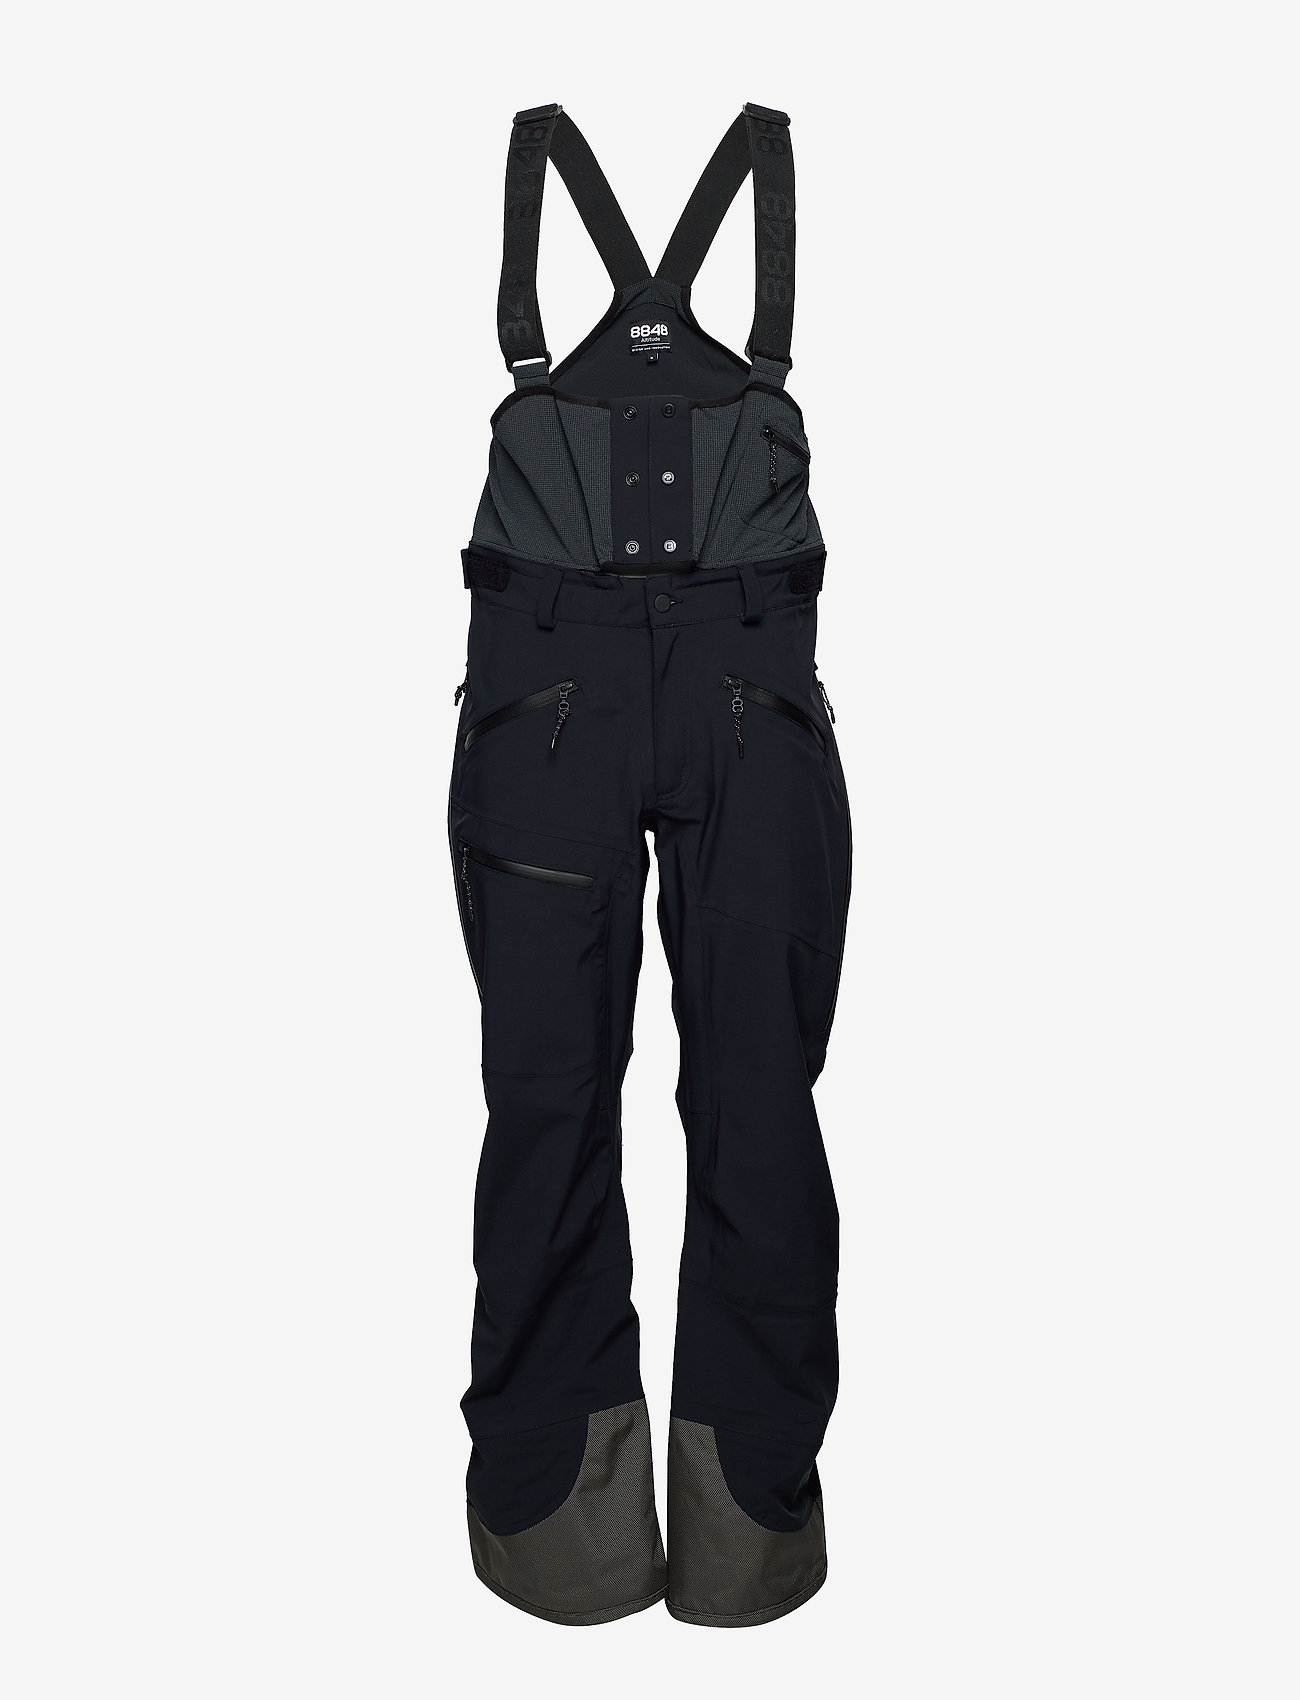 8848 Altitude - Creekside Pant - shell pants - black - 0